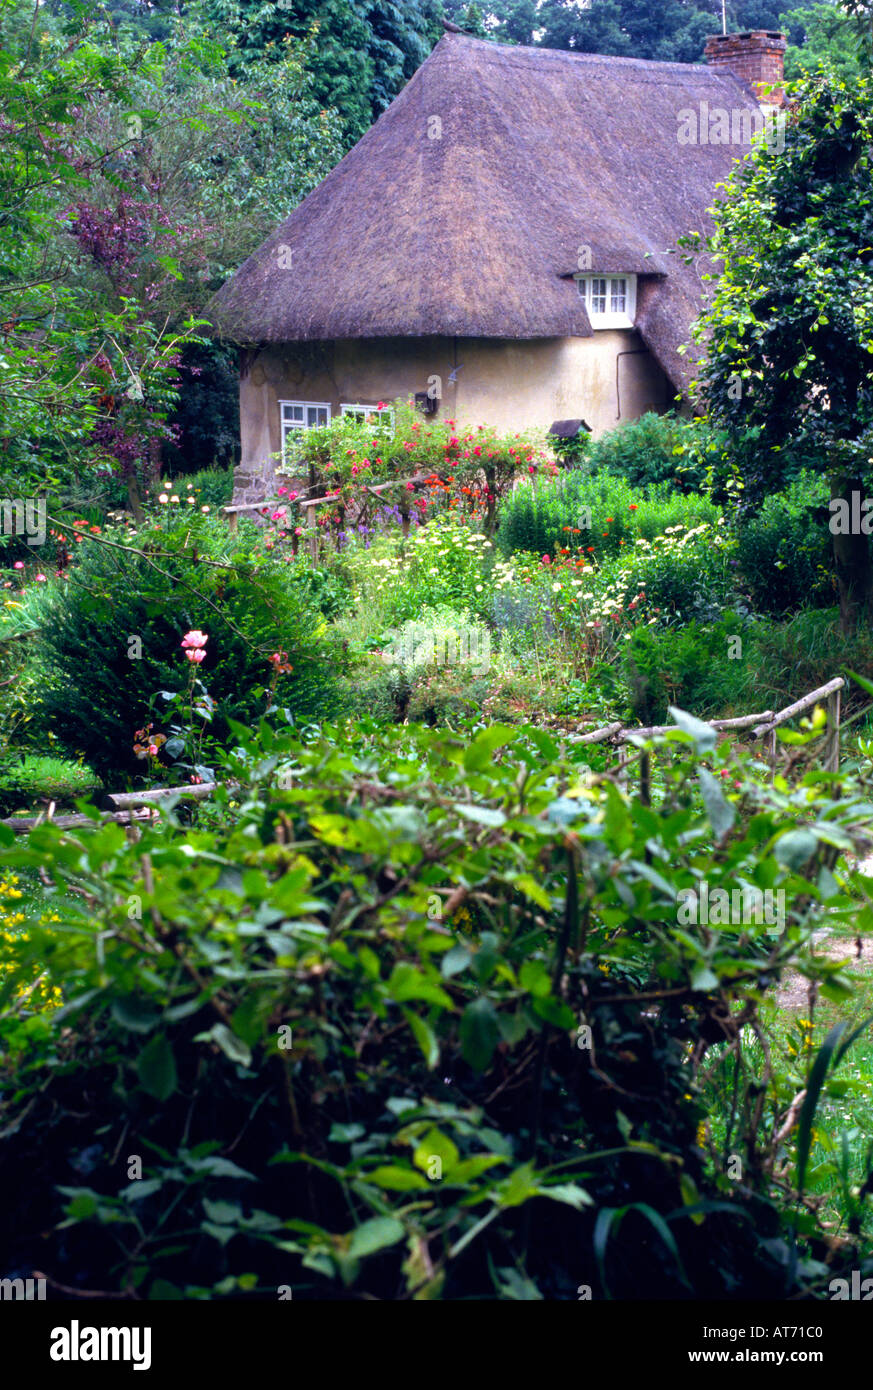 Country cottage Wiltshire England - Stock Image